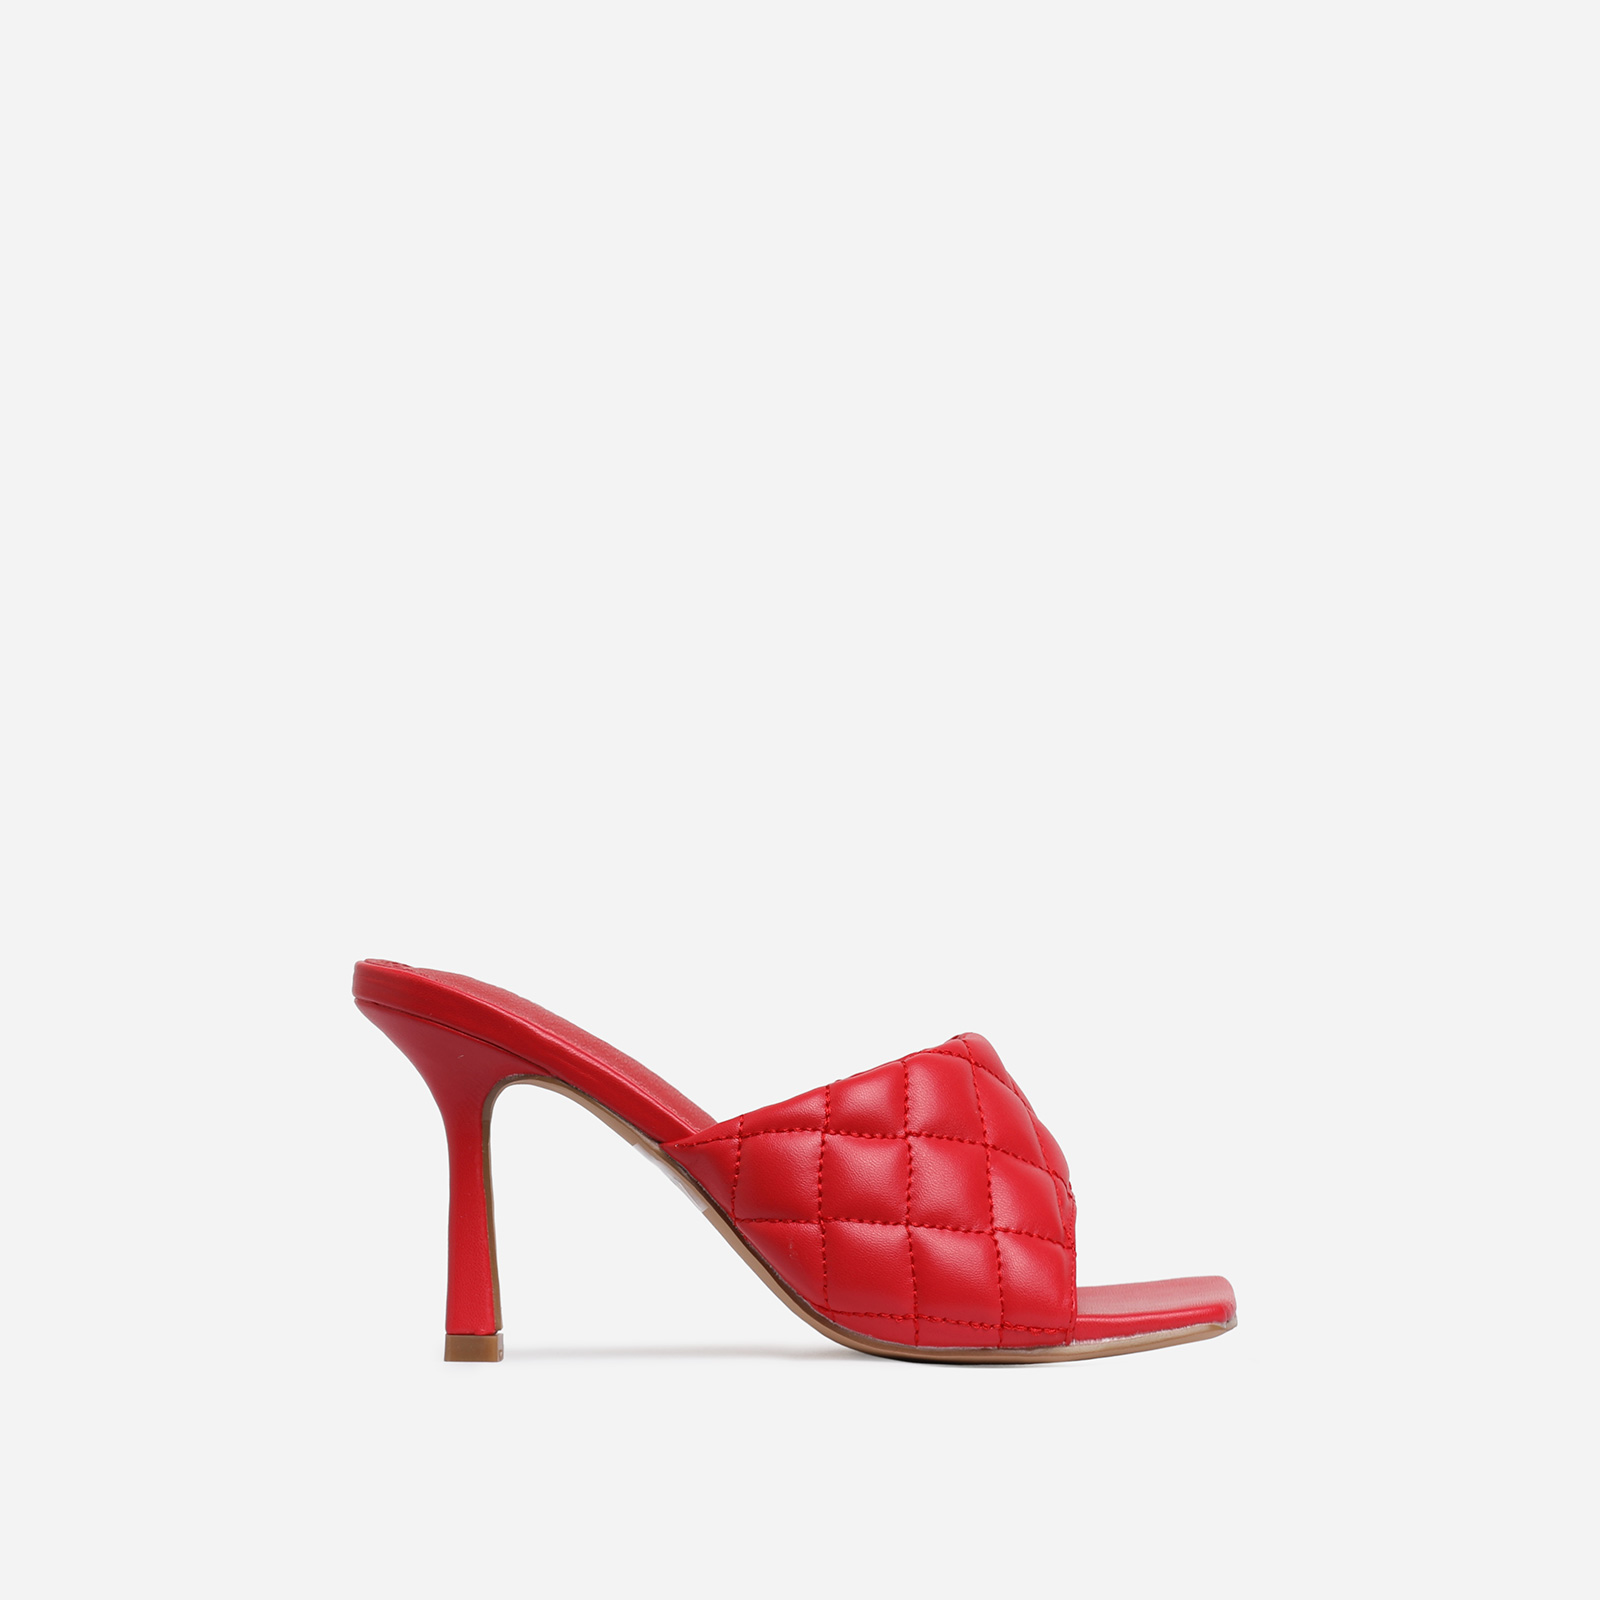 Tropez Square Toe Quilted Heel Mule In Red Faux Leather